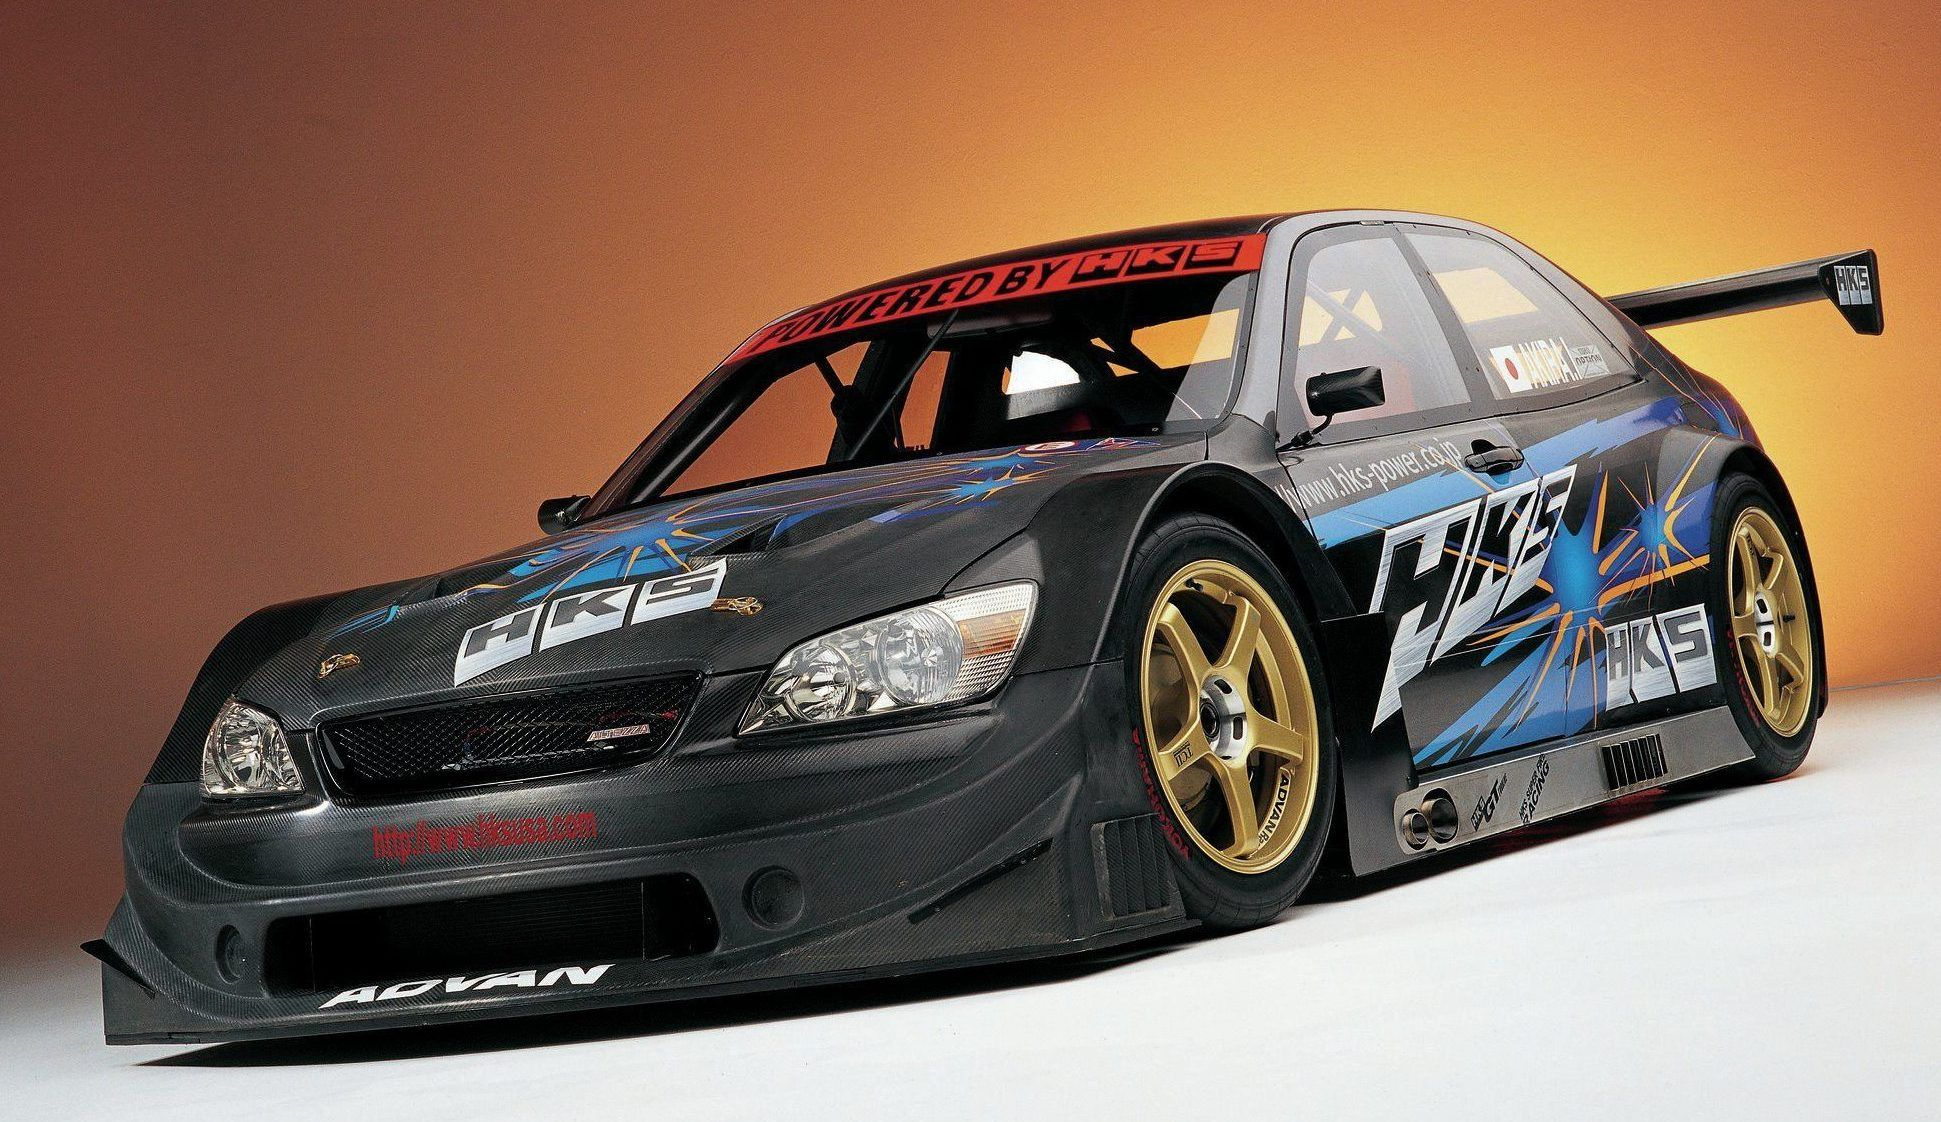 9th 2000 TRACK ATTACK TOYOTA ALTEZZA (BY HKS JAPAN)